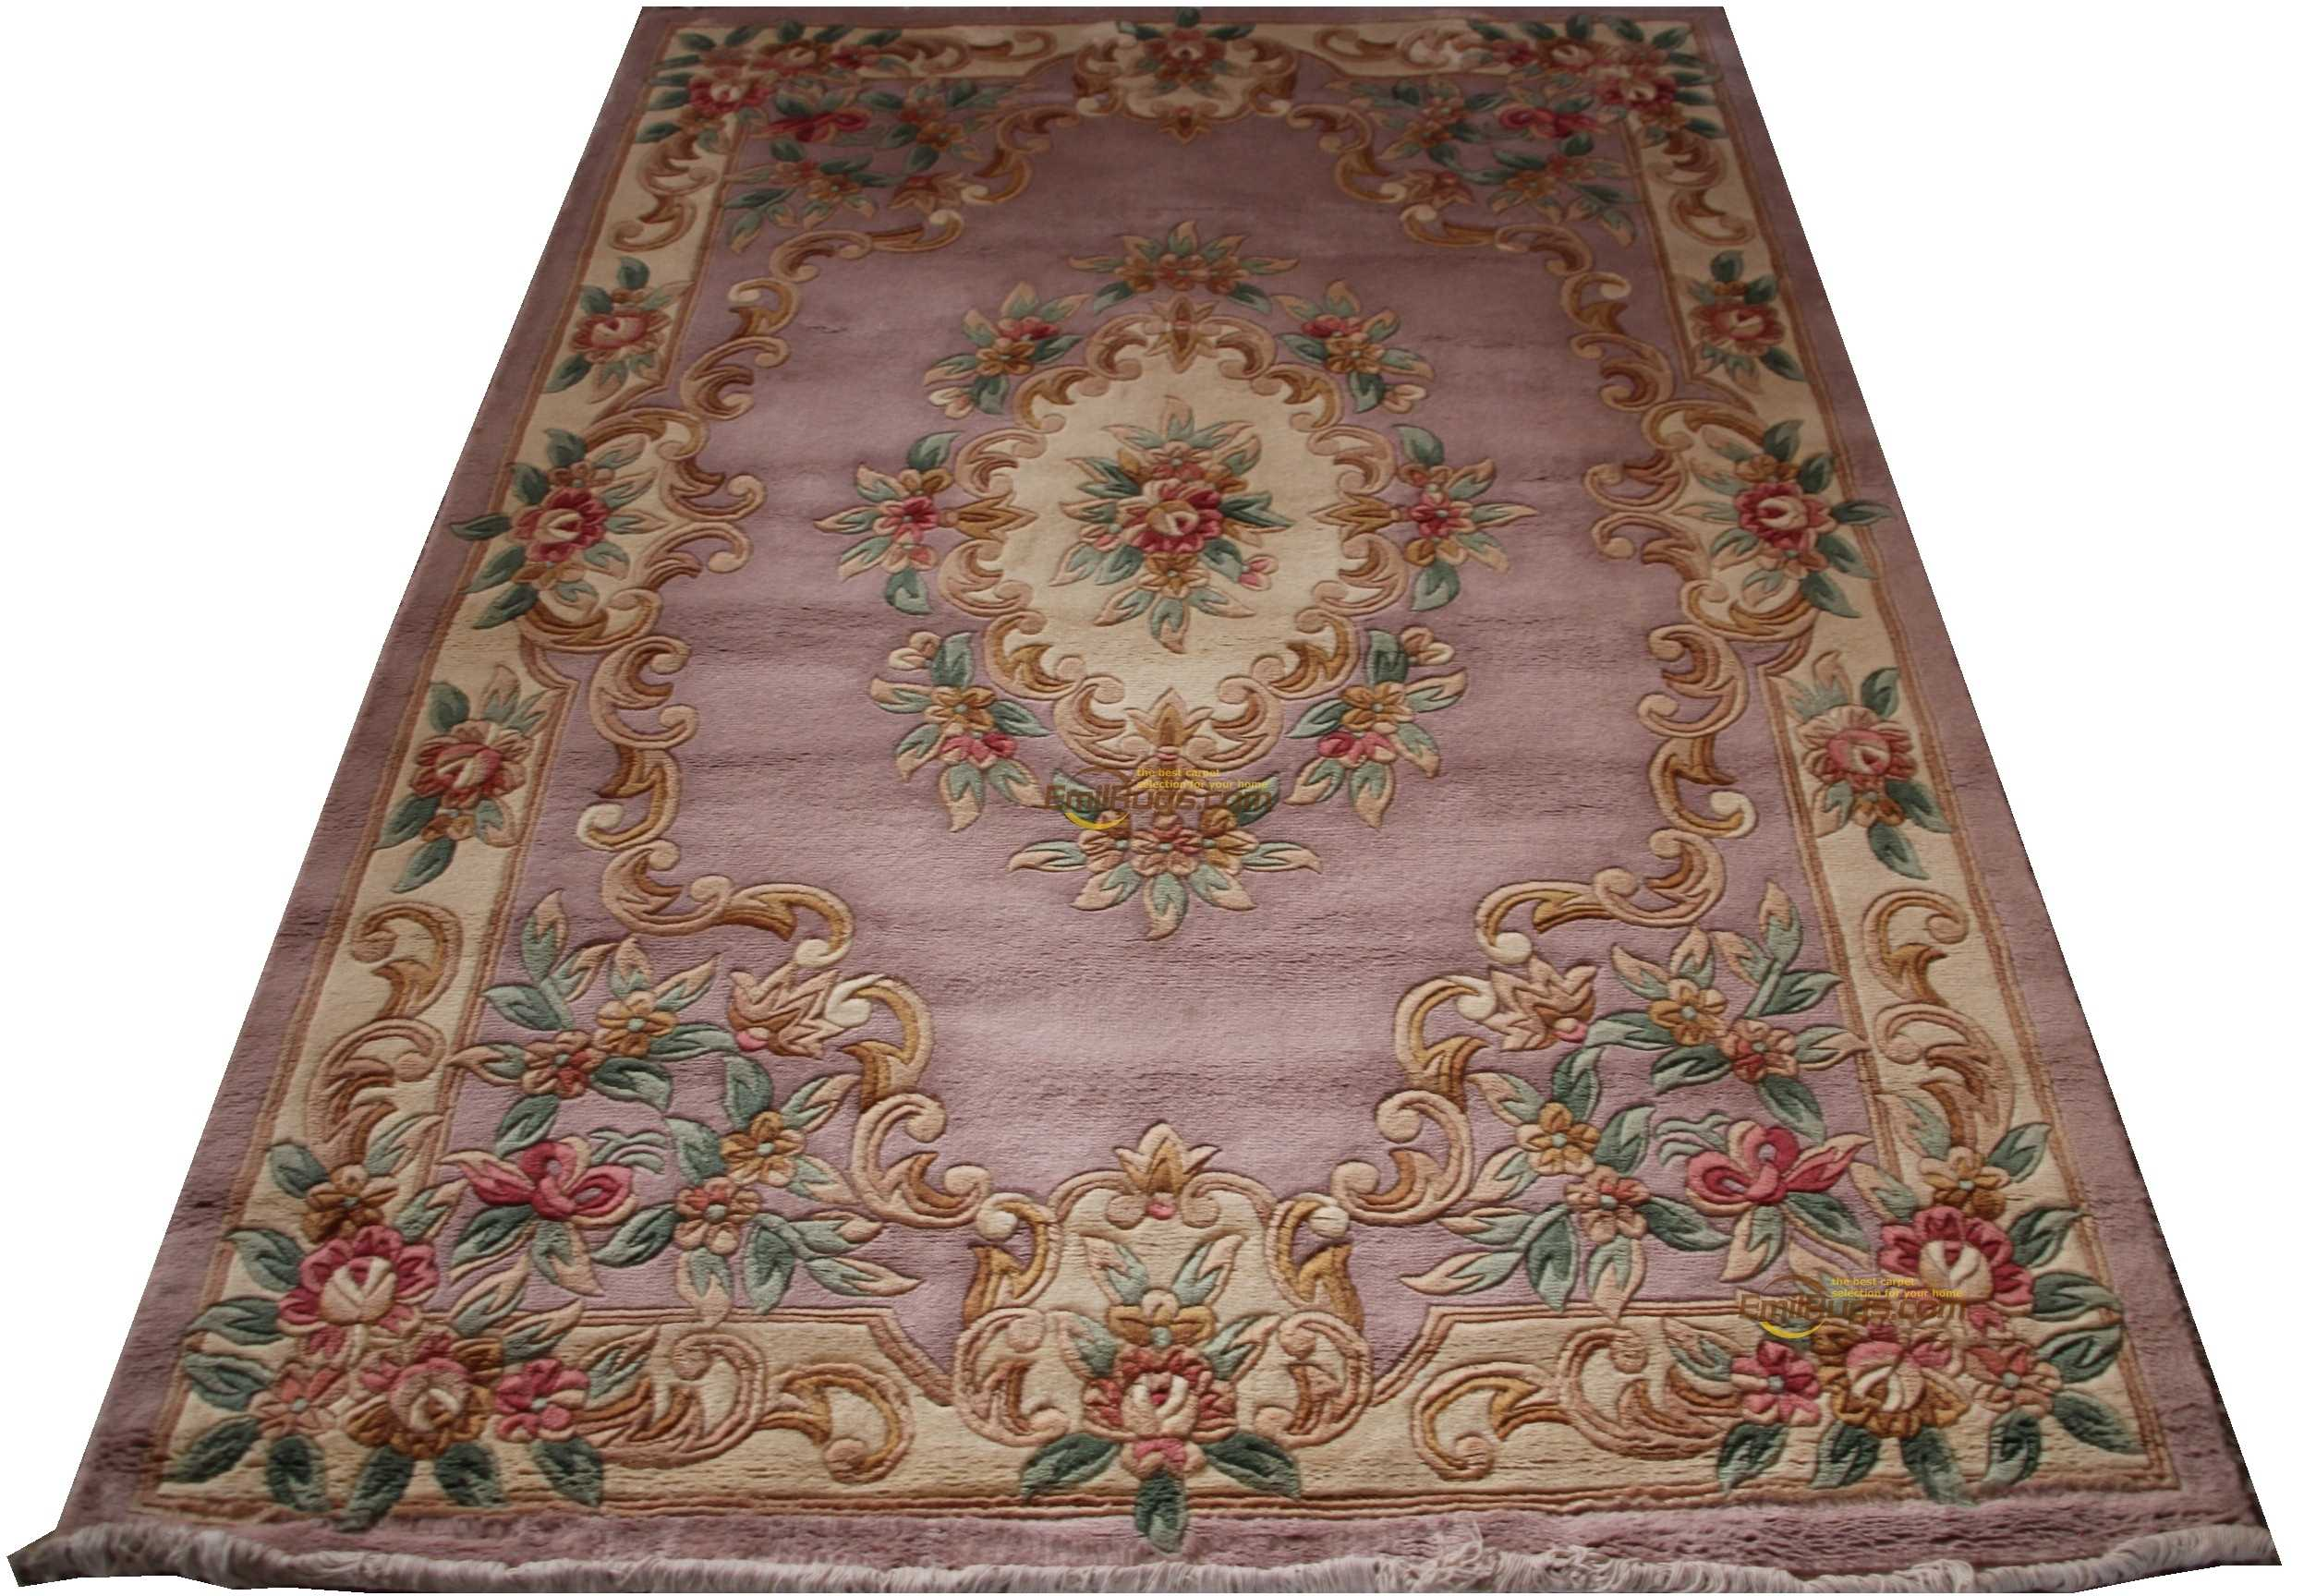 Thick And Plush European Savonnerie Rug Handwoven Wool Carpets For Living Room Runner Chinese